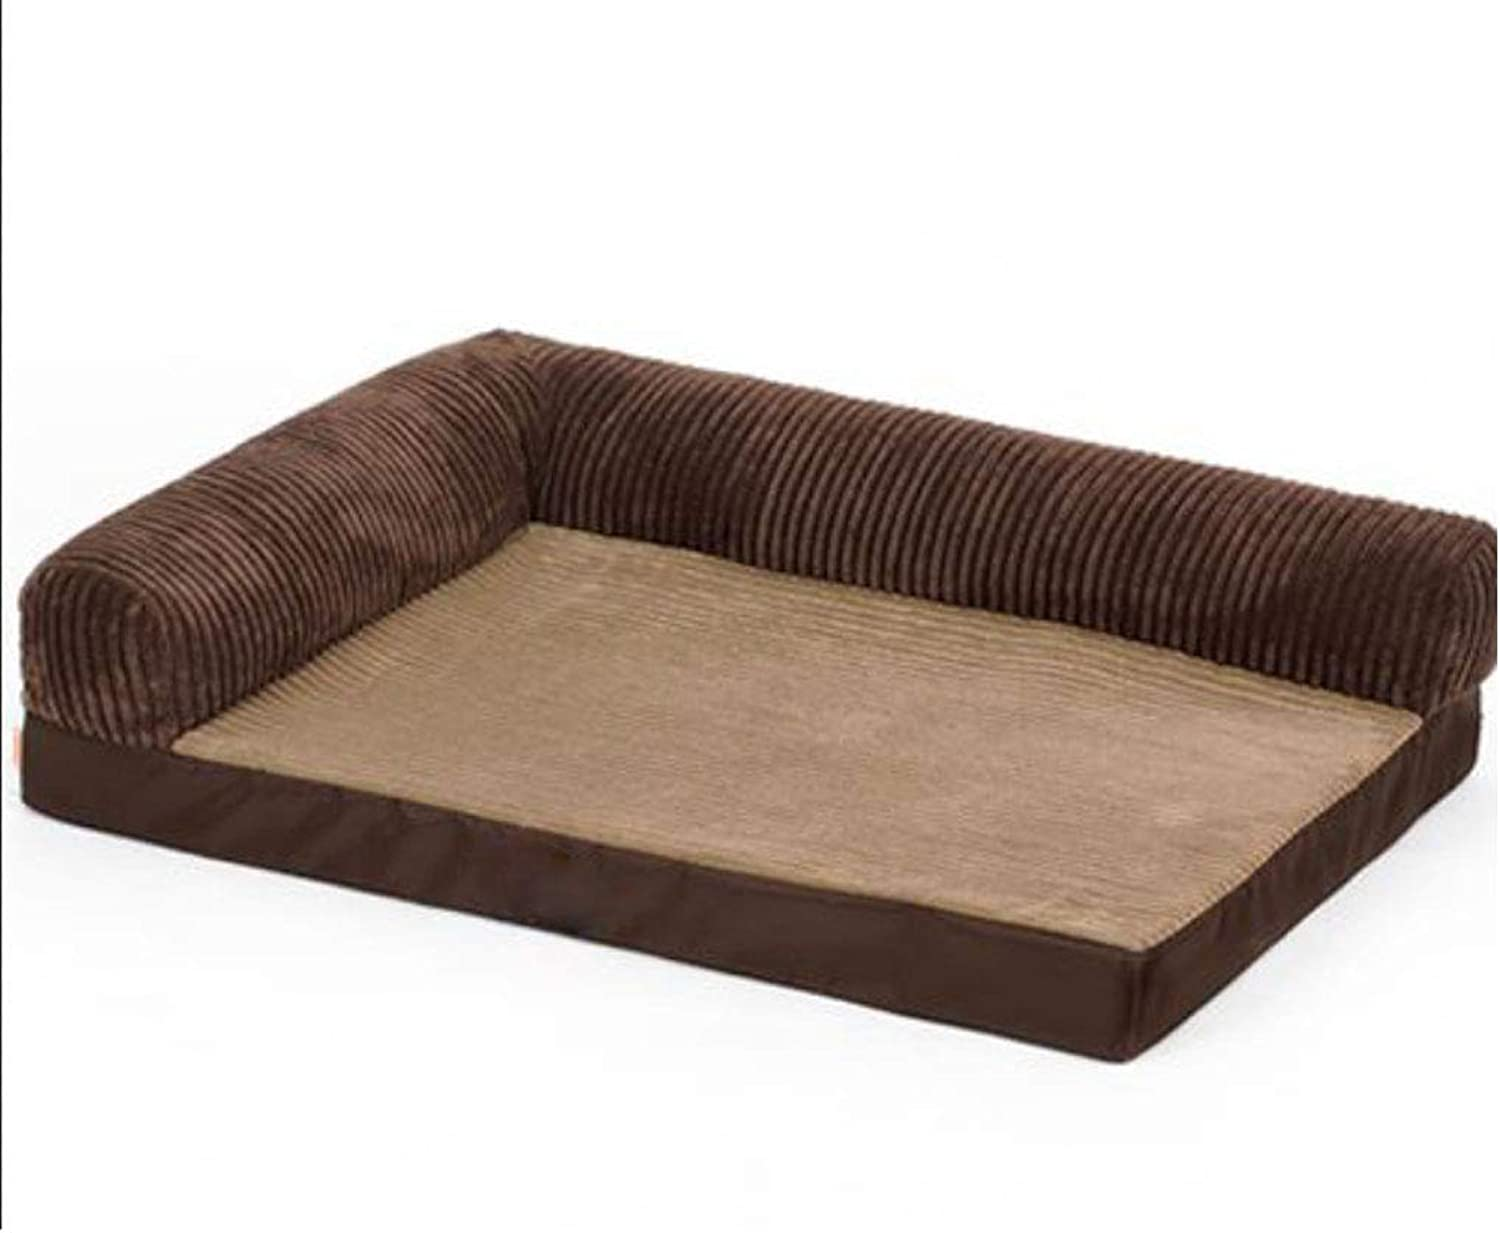 Dog Bed bluee Brown Doghouse Sofa Kennel Square Pillow Large Dog Cat Room Mattress Pet Supplies (color   B, Size   S)